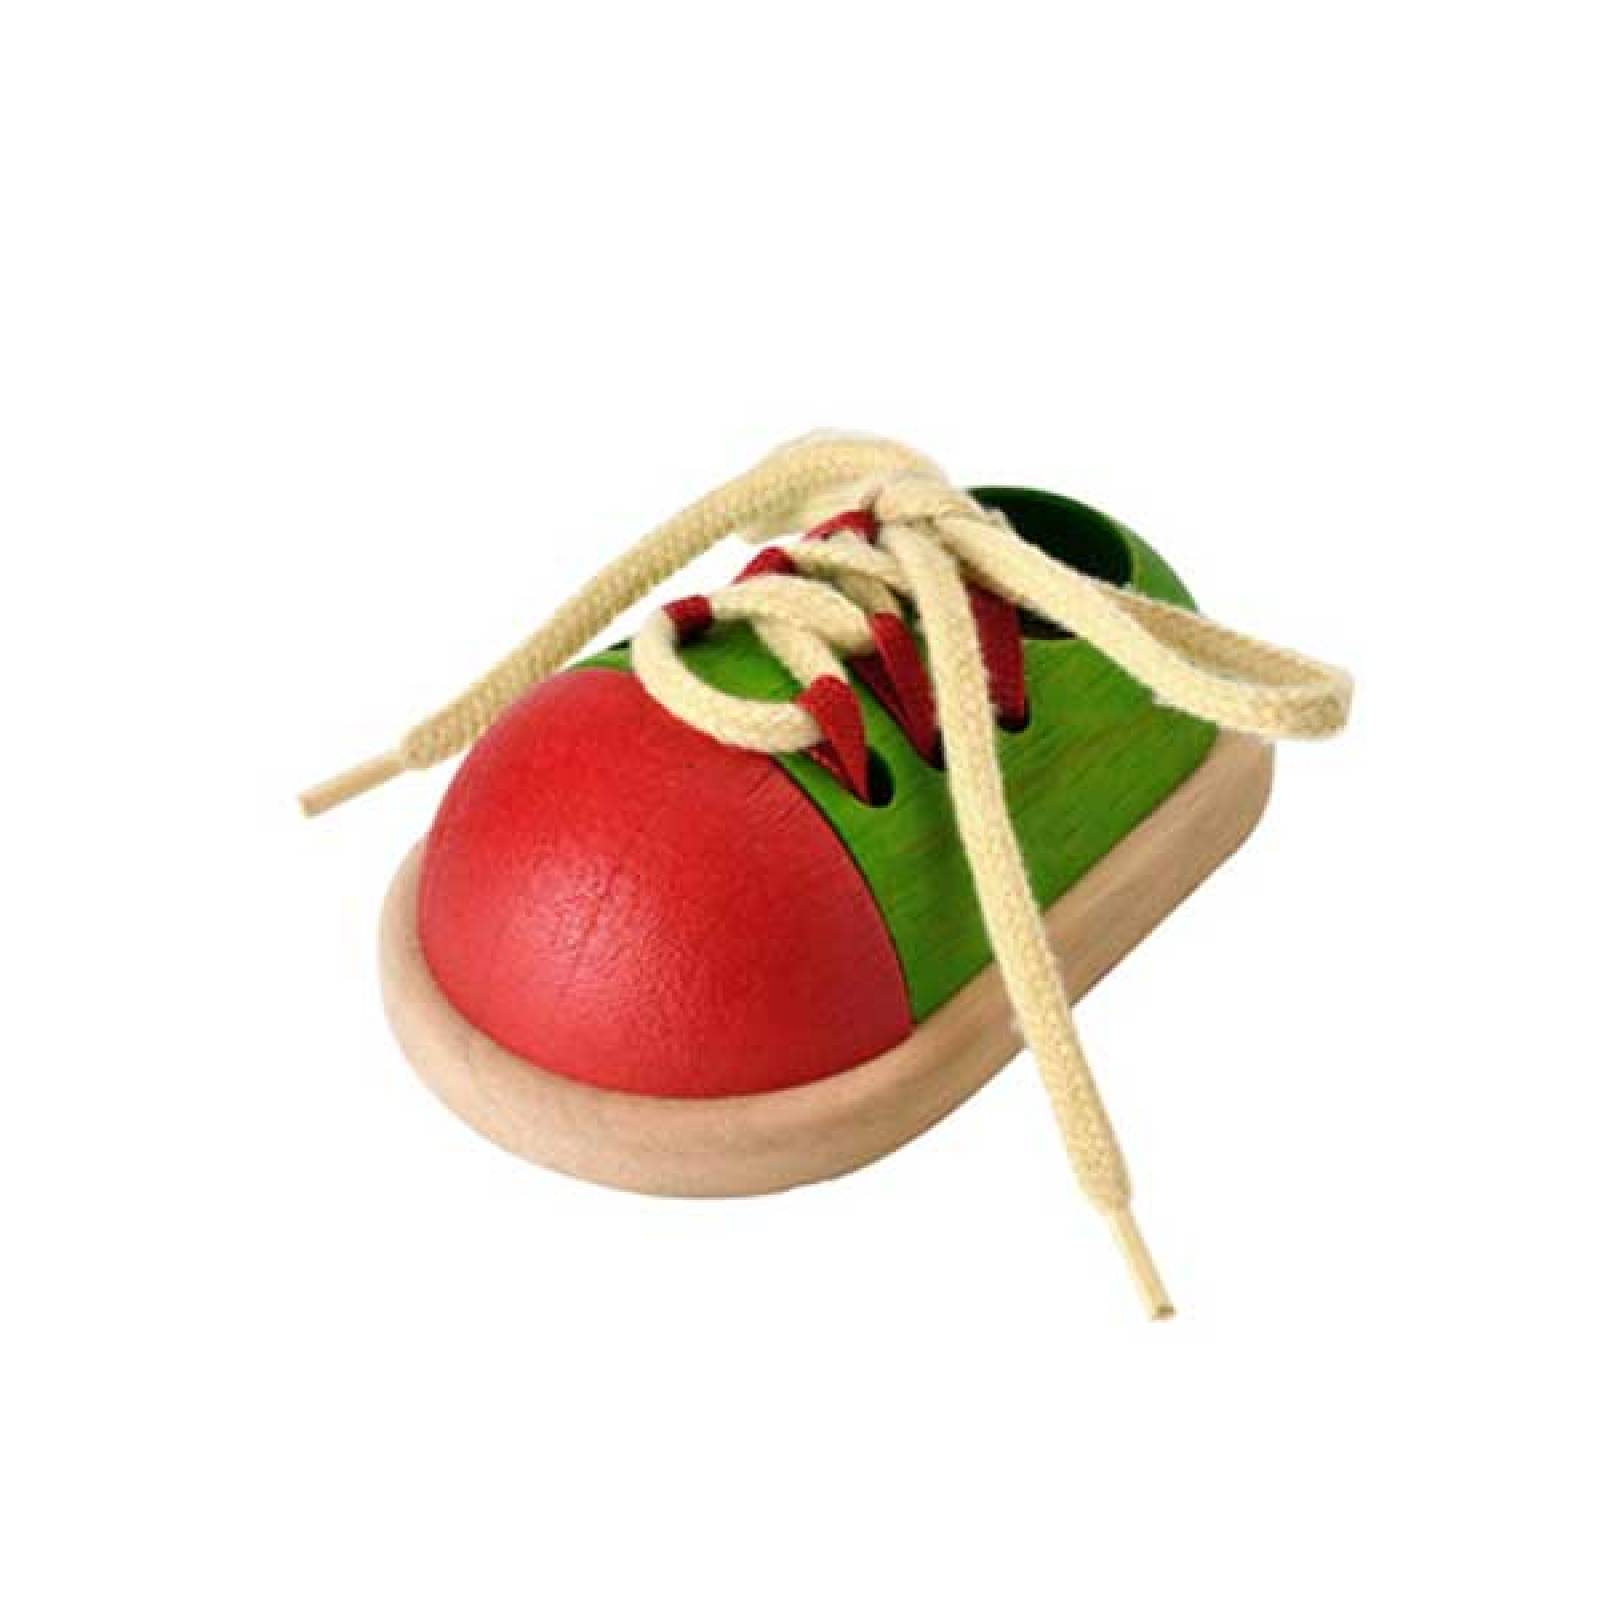 Wooden Tie Up Shoe Toy By Plan Toys 3+